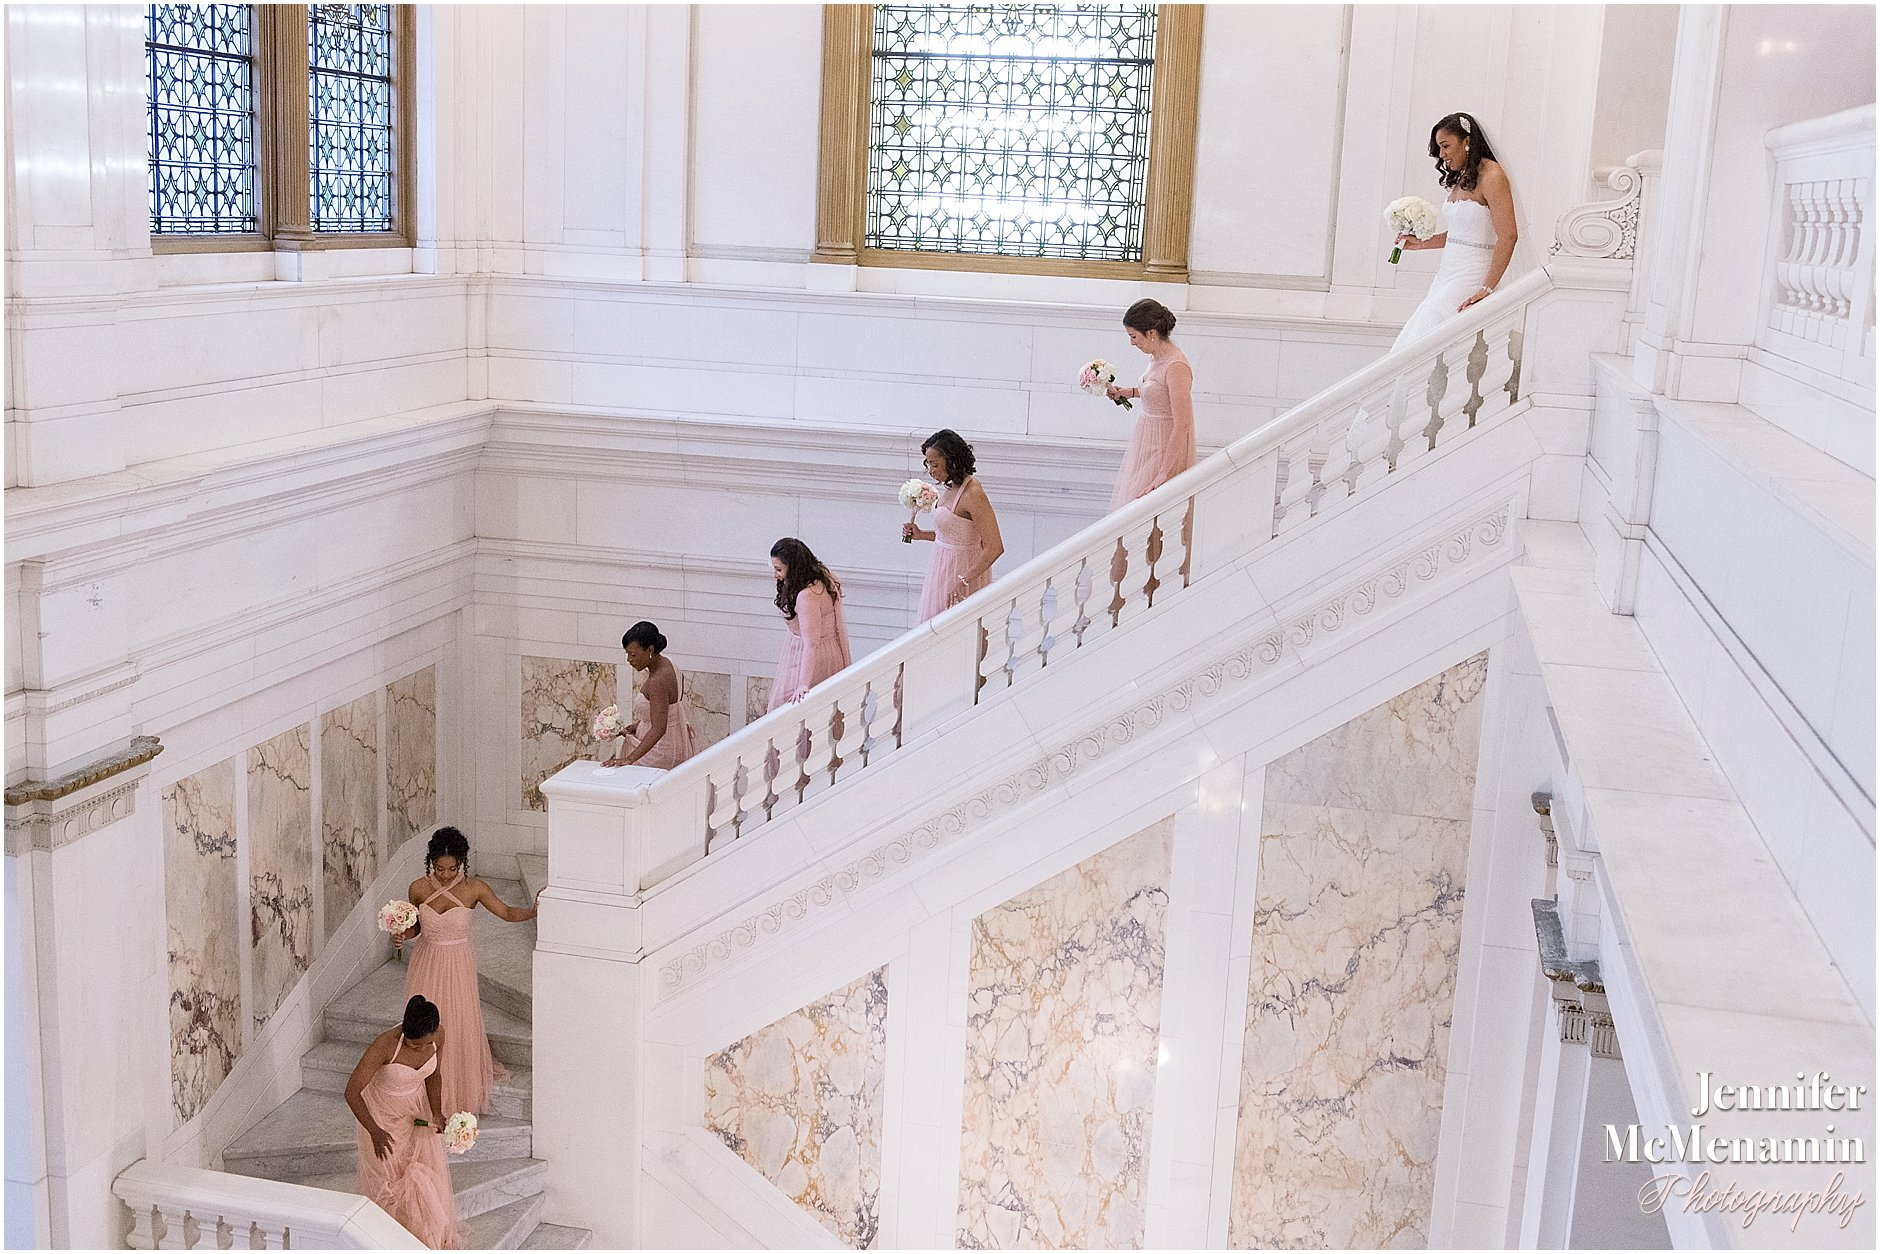 015-Peabody-Library-Wedding_WilsonPatterson_00620-0119_Jennifer-McMenamin-Photography